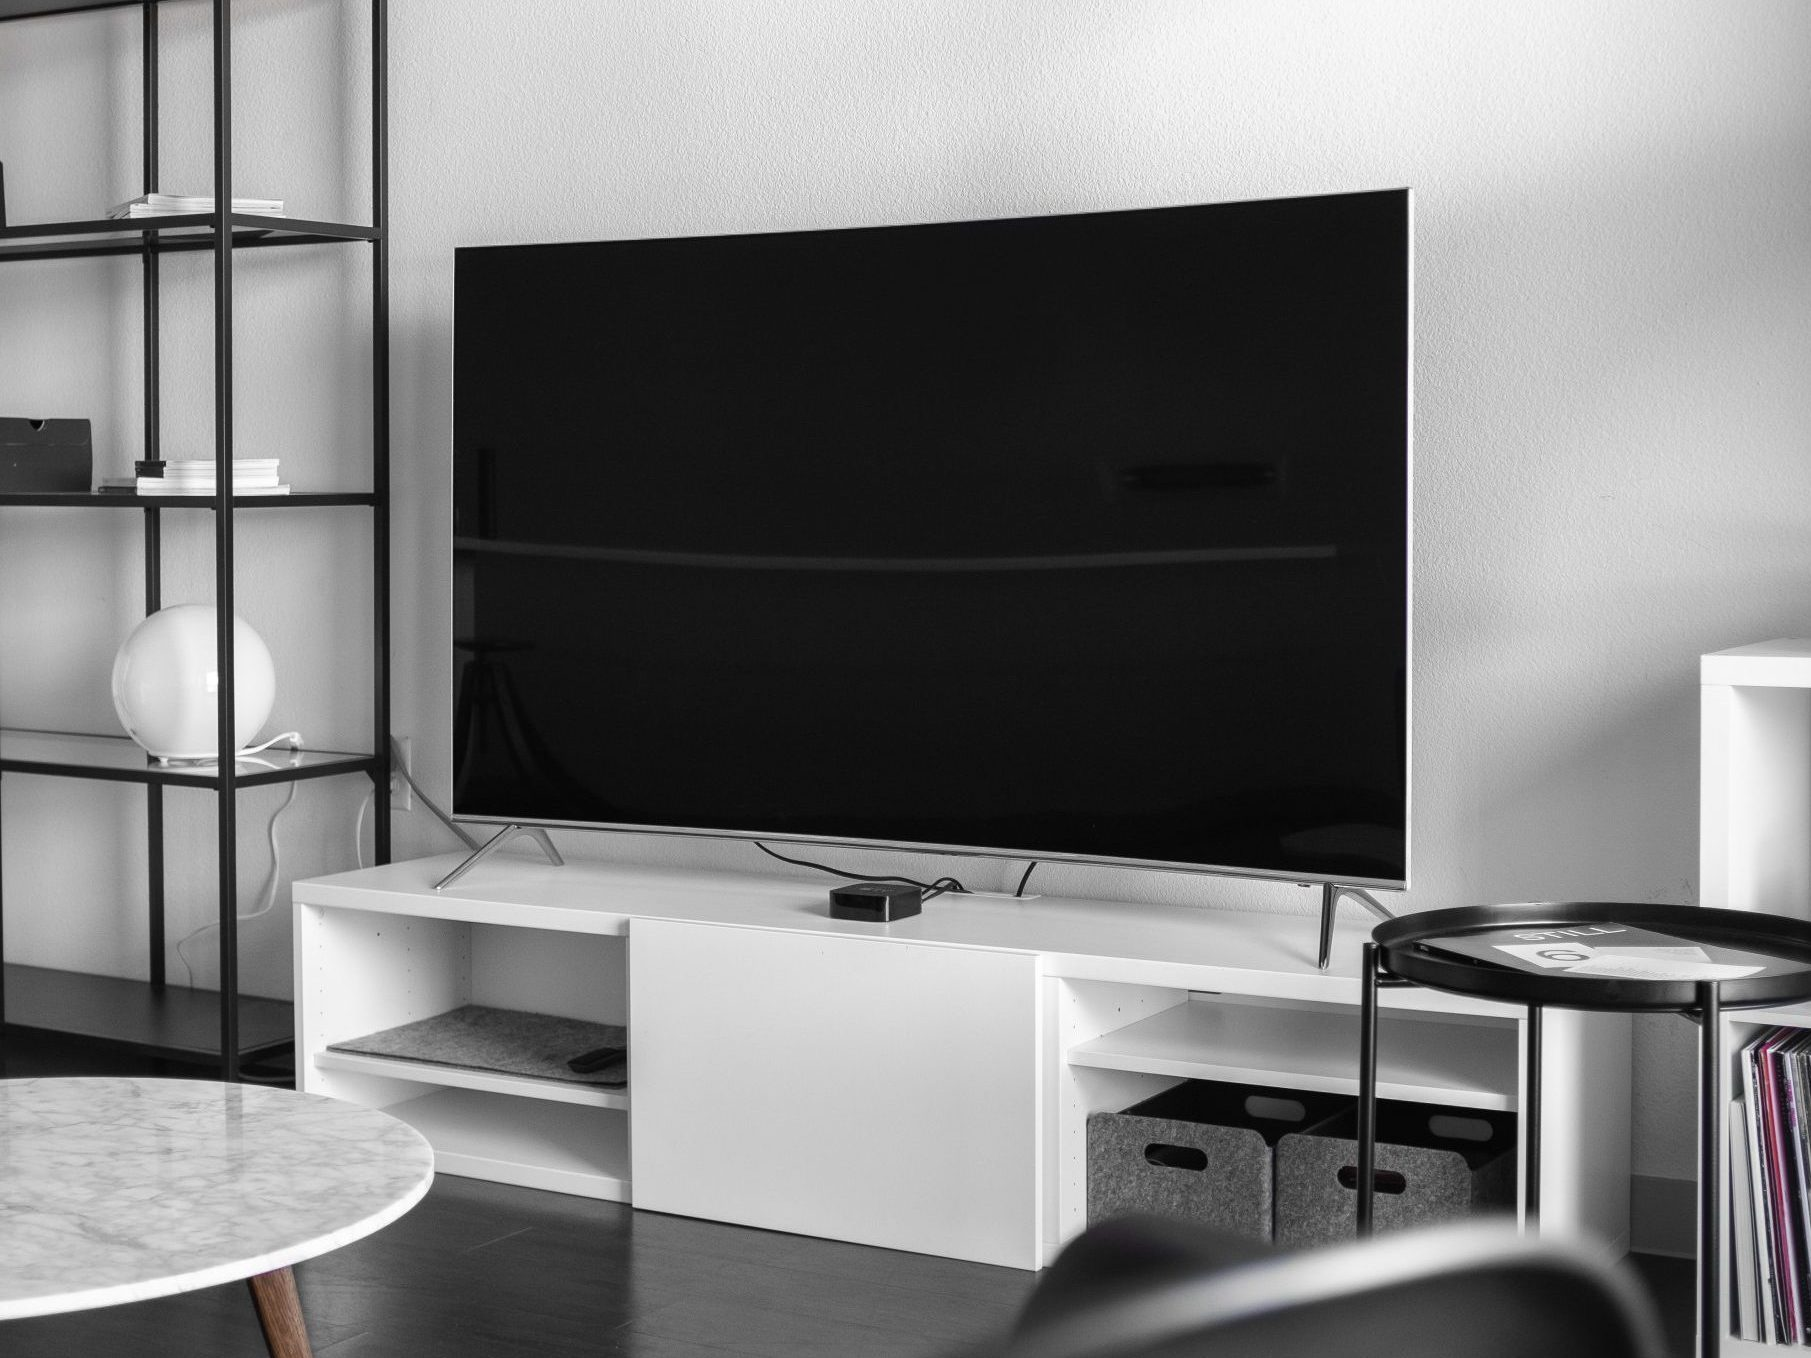 6 tips for buying a TV